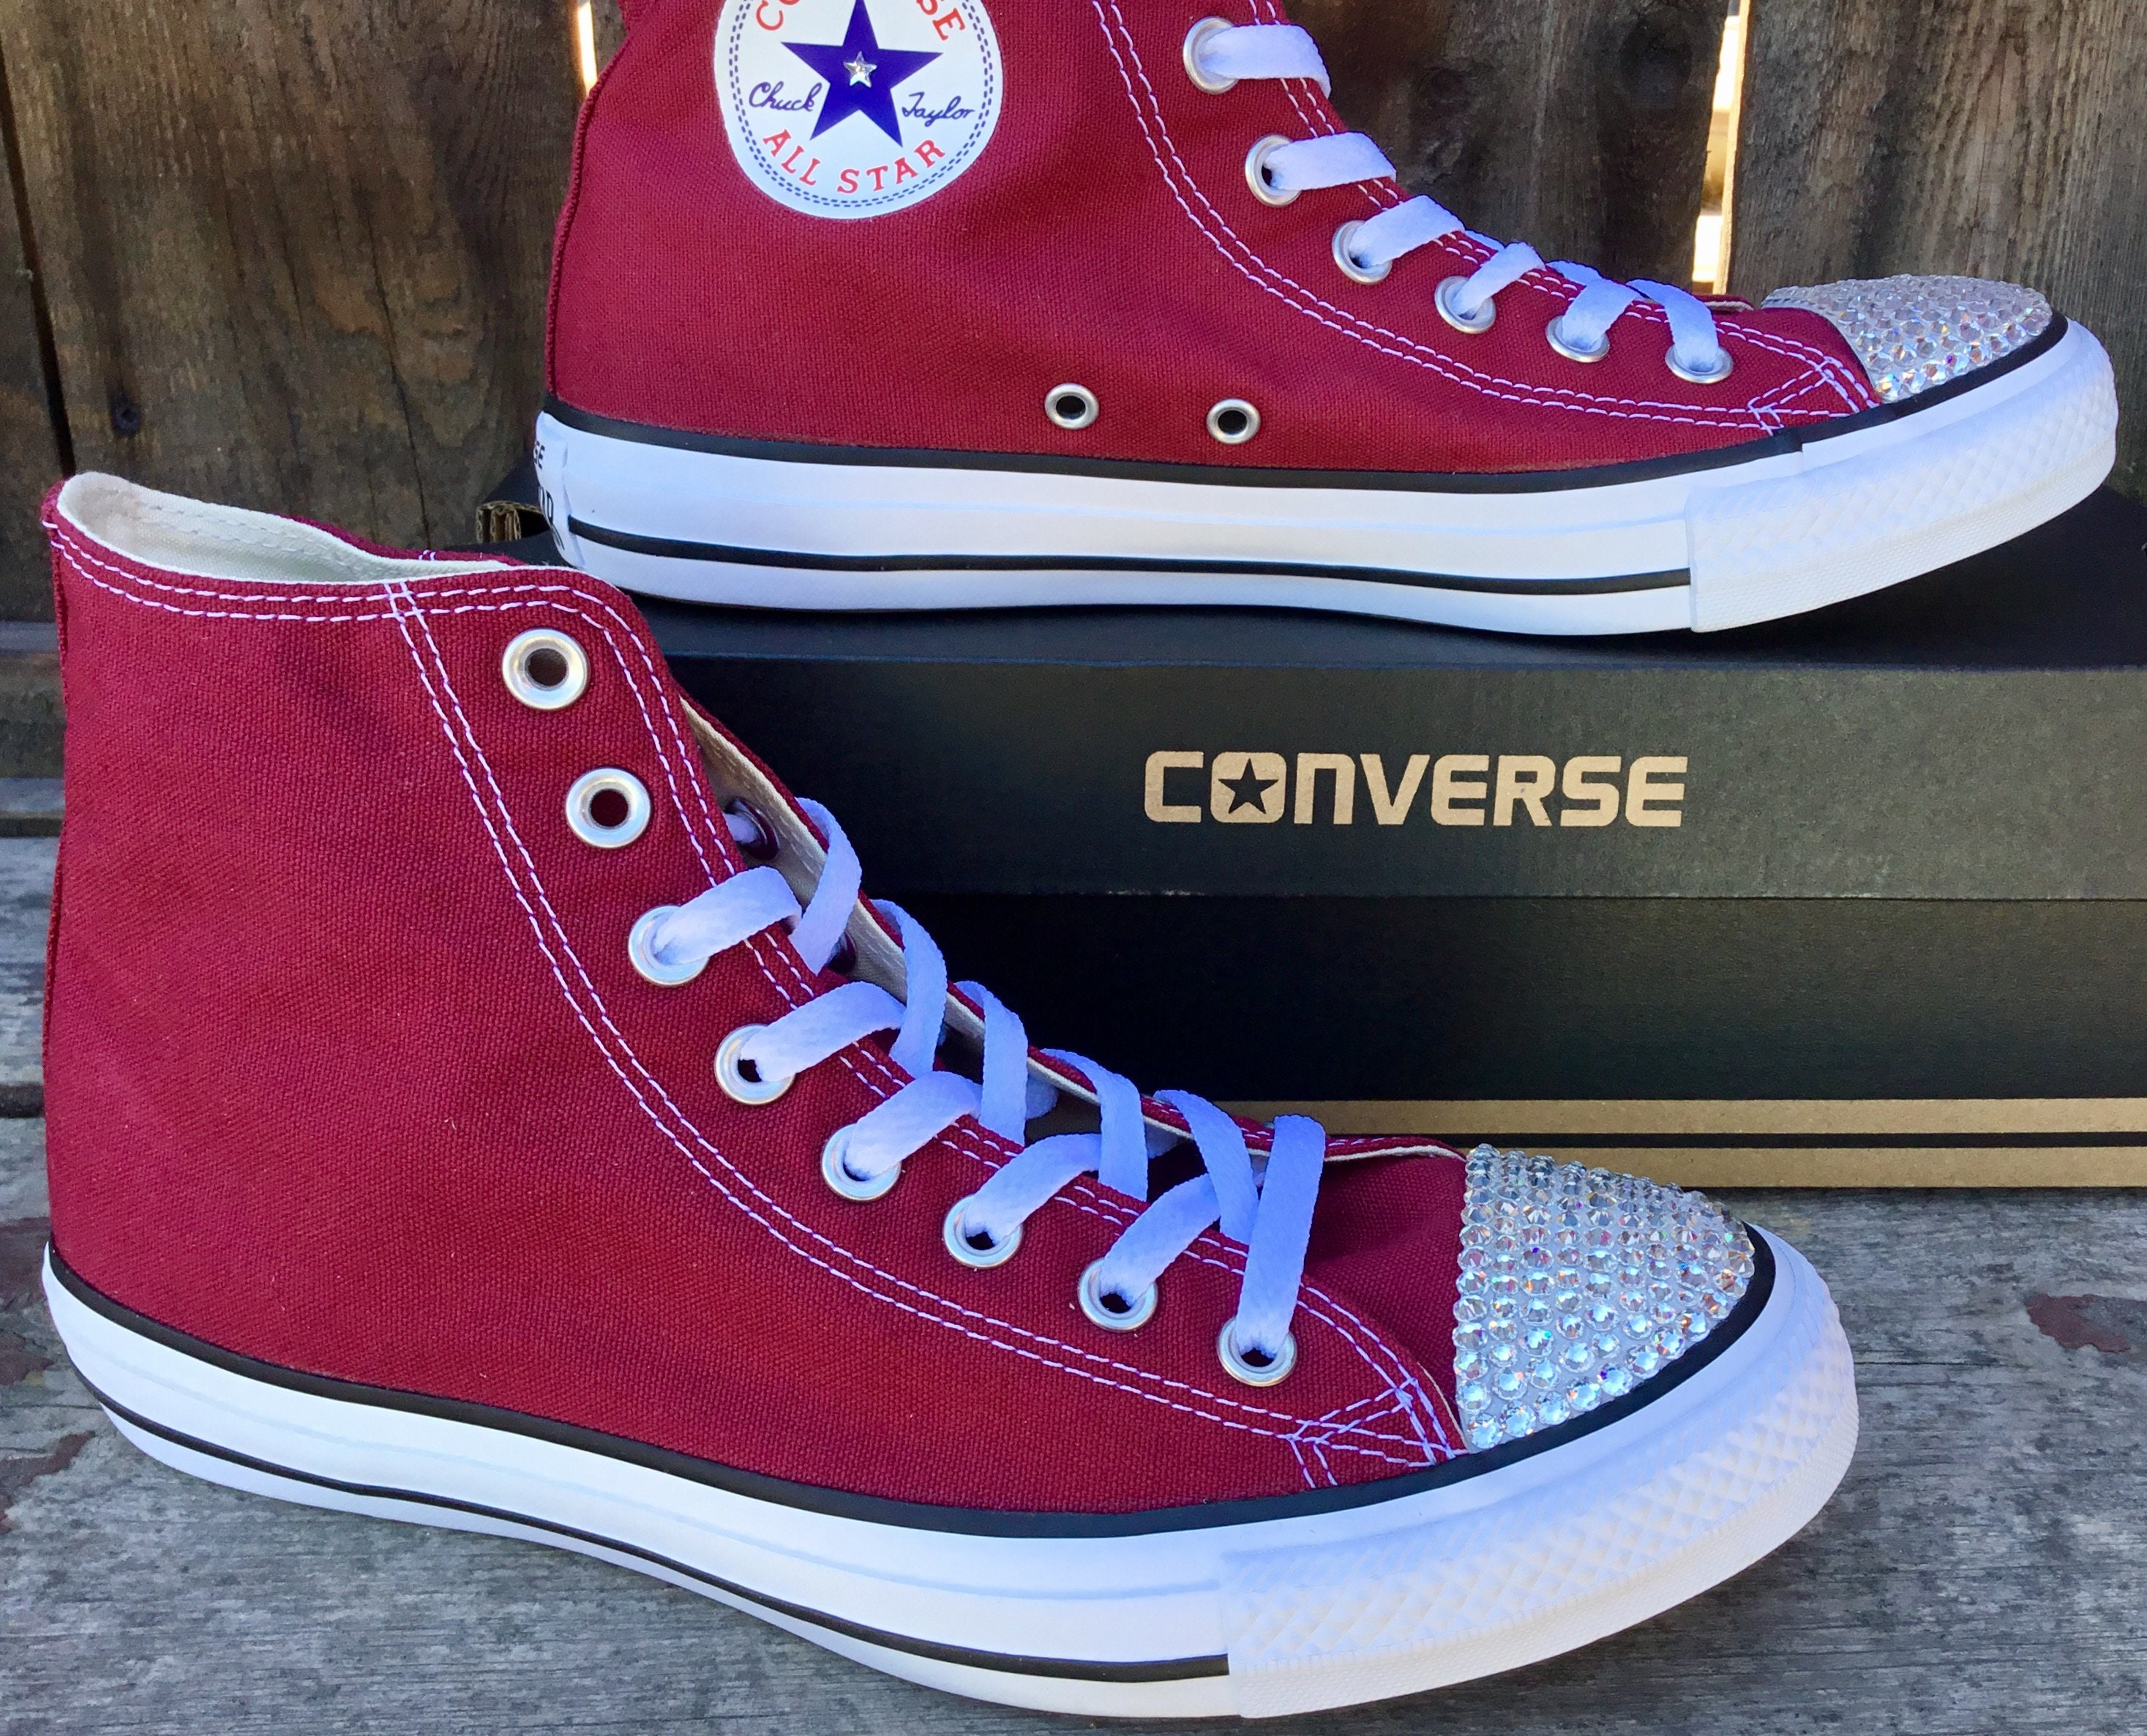 2cc7a161779f0b Burgundy Converse High Top Custom Mens Womens Glass Slippers w  Swarovski  Crystal Bling Maroon Wine Red Chuck Taylor All Star Sneakers Shoes